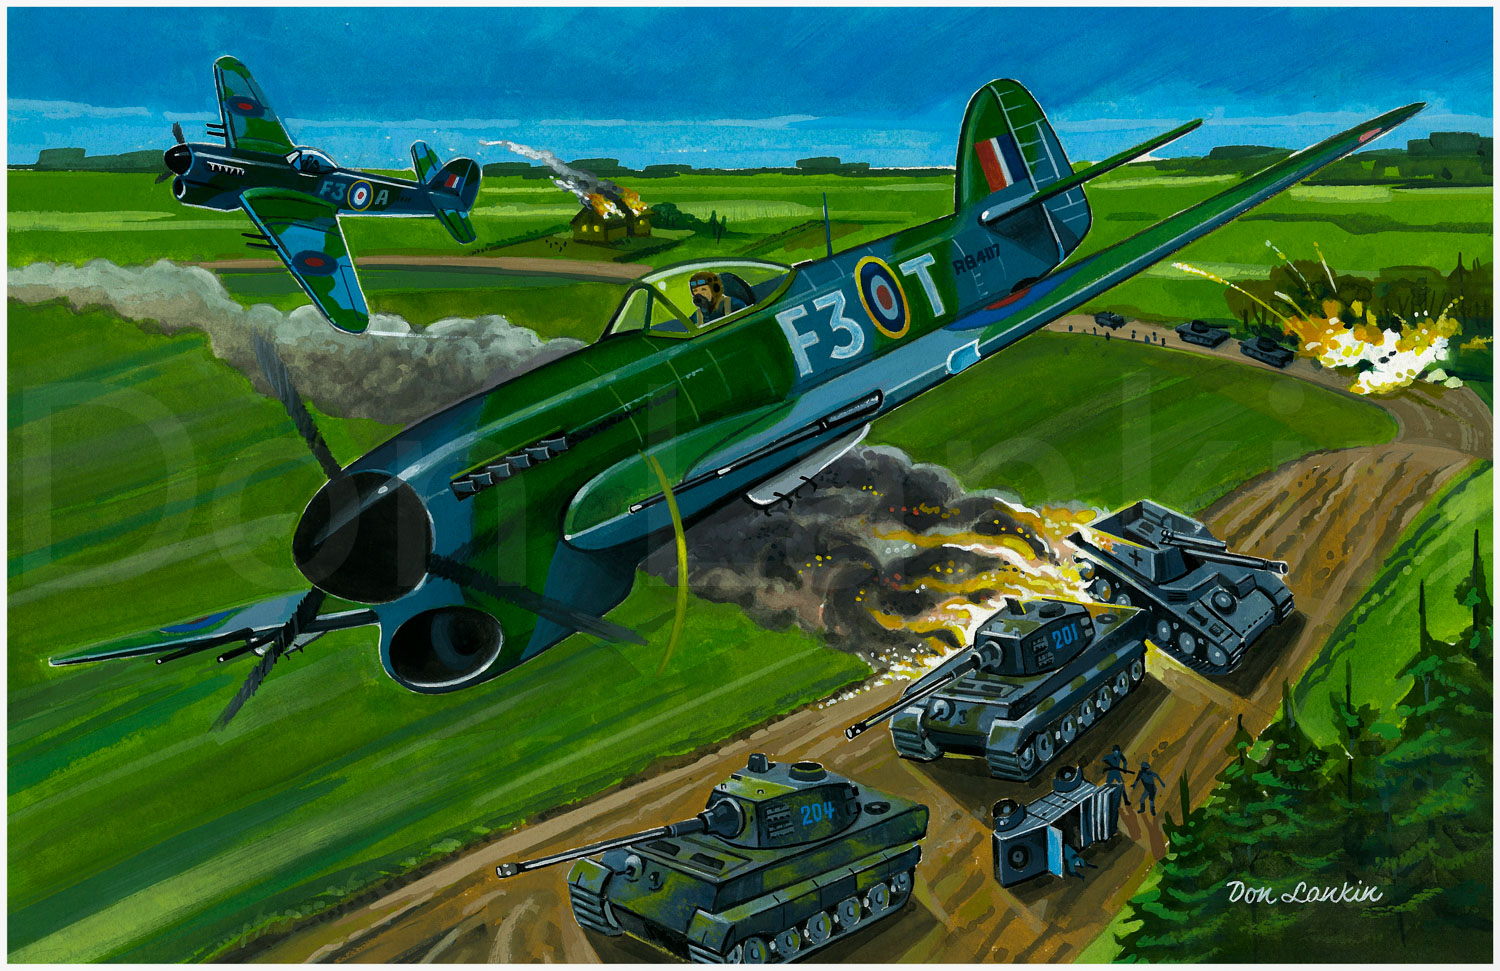 R.C.A.F  #HawkerTyphoon  's decimate a German armoured car.  #aviationart   #aviation -art  #artofdonlankin